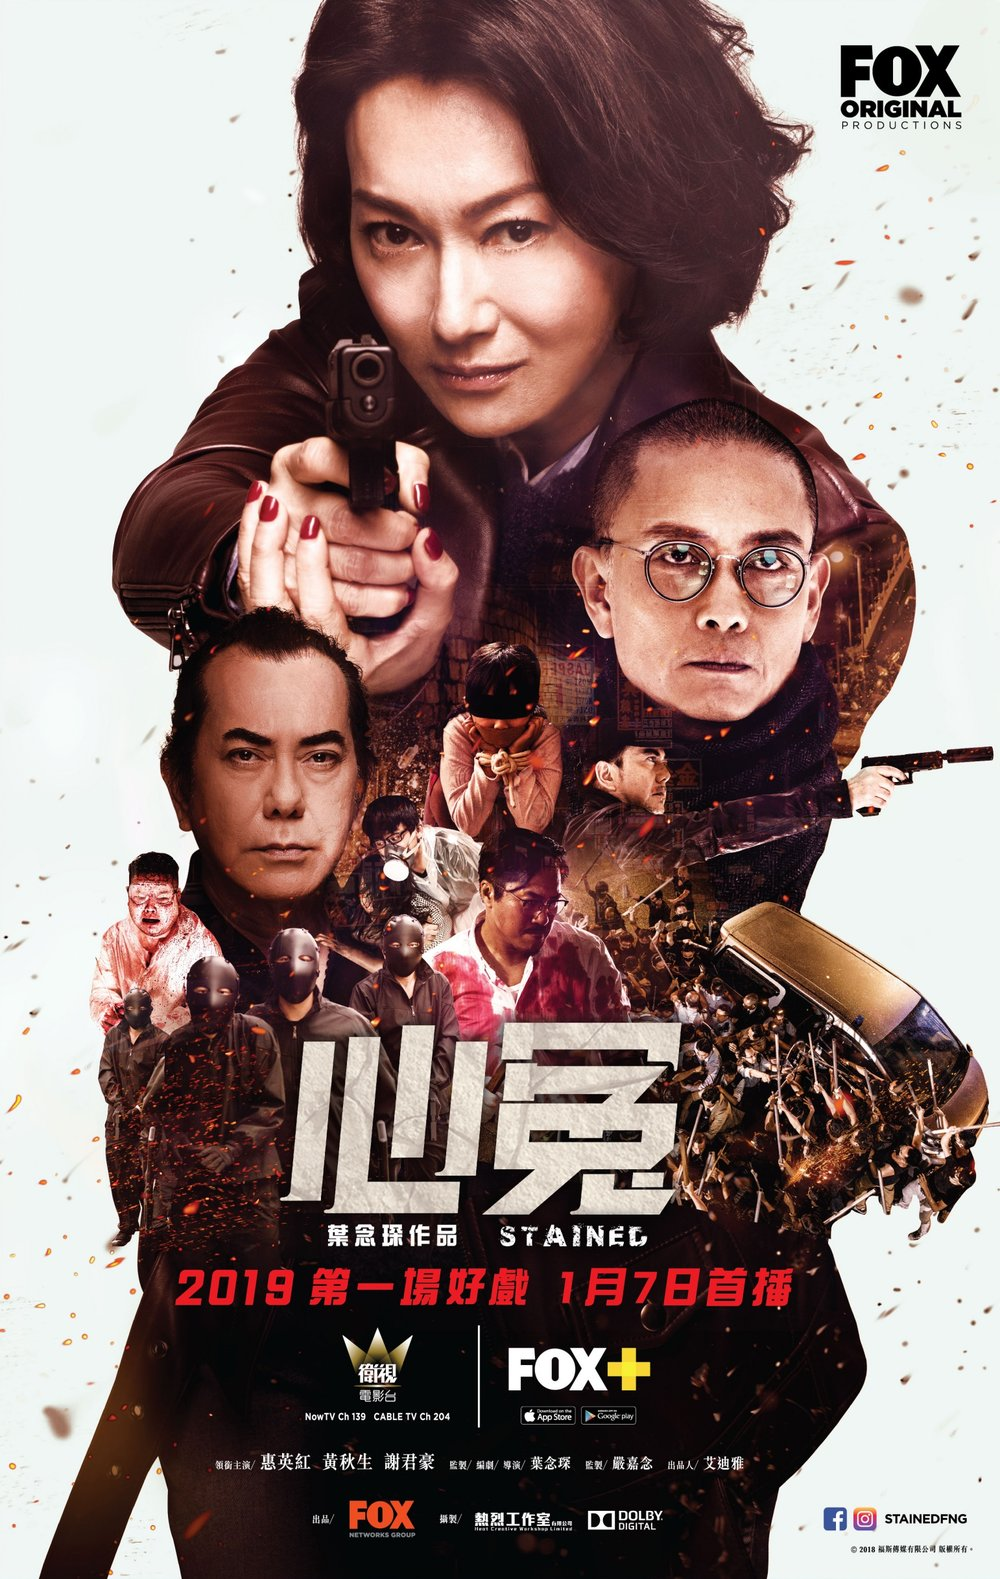 20181224_Stained_Poster.jpg